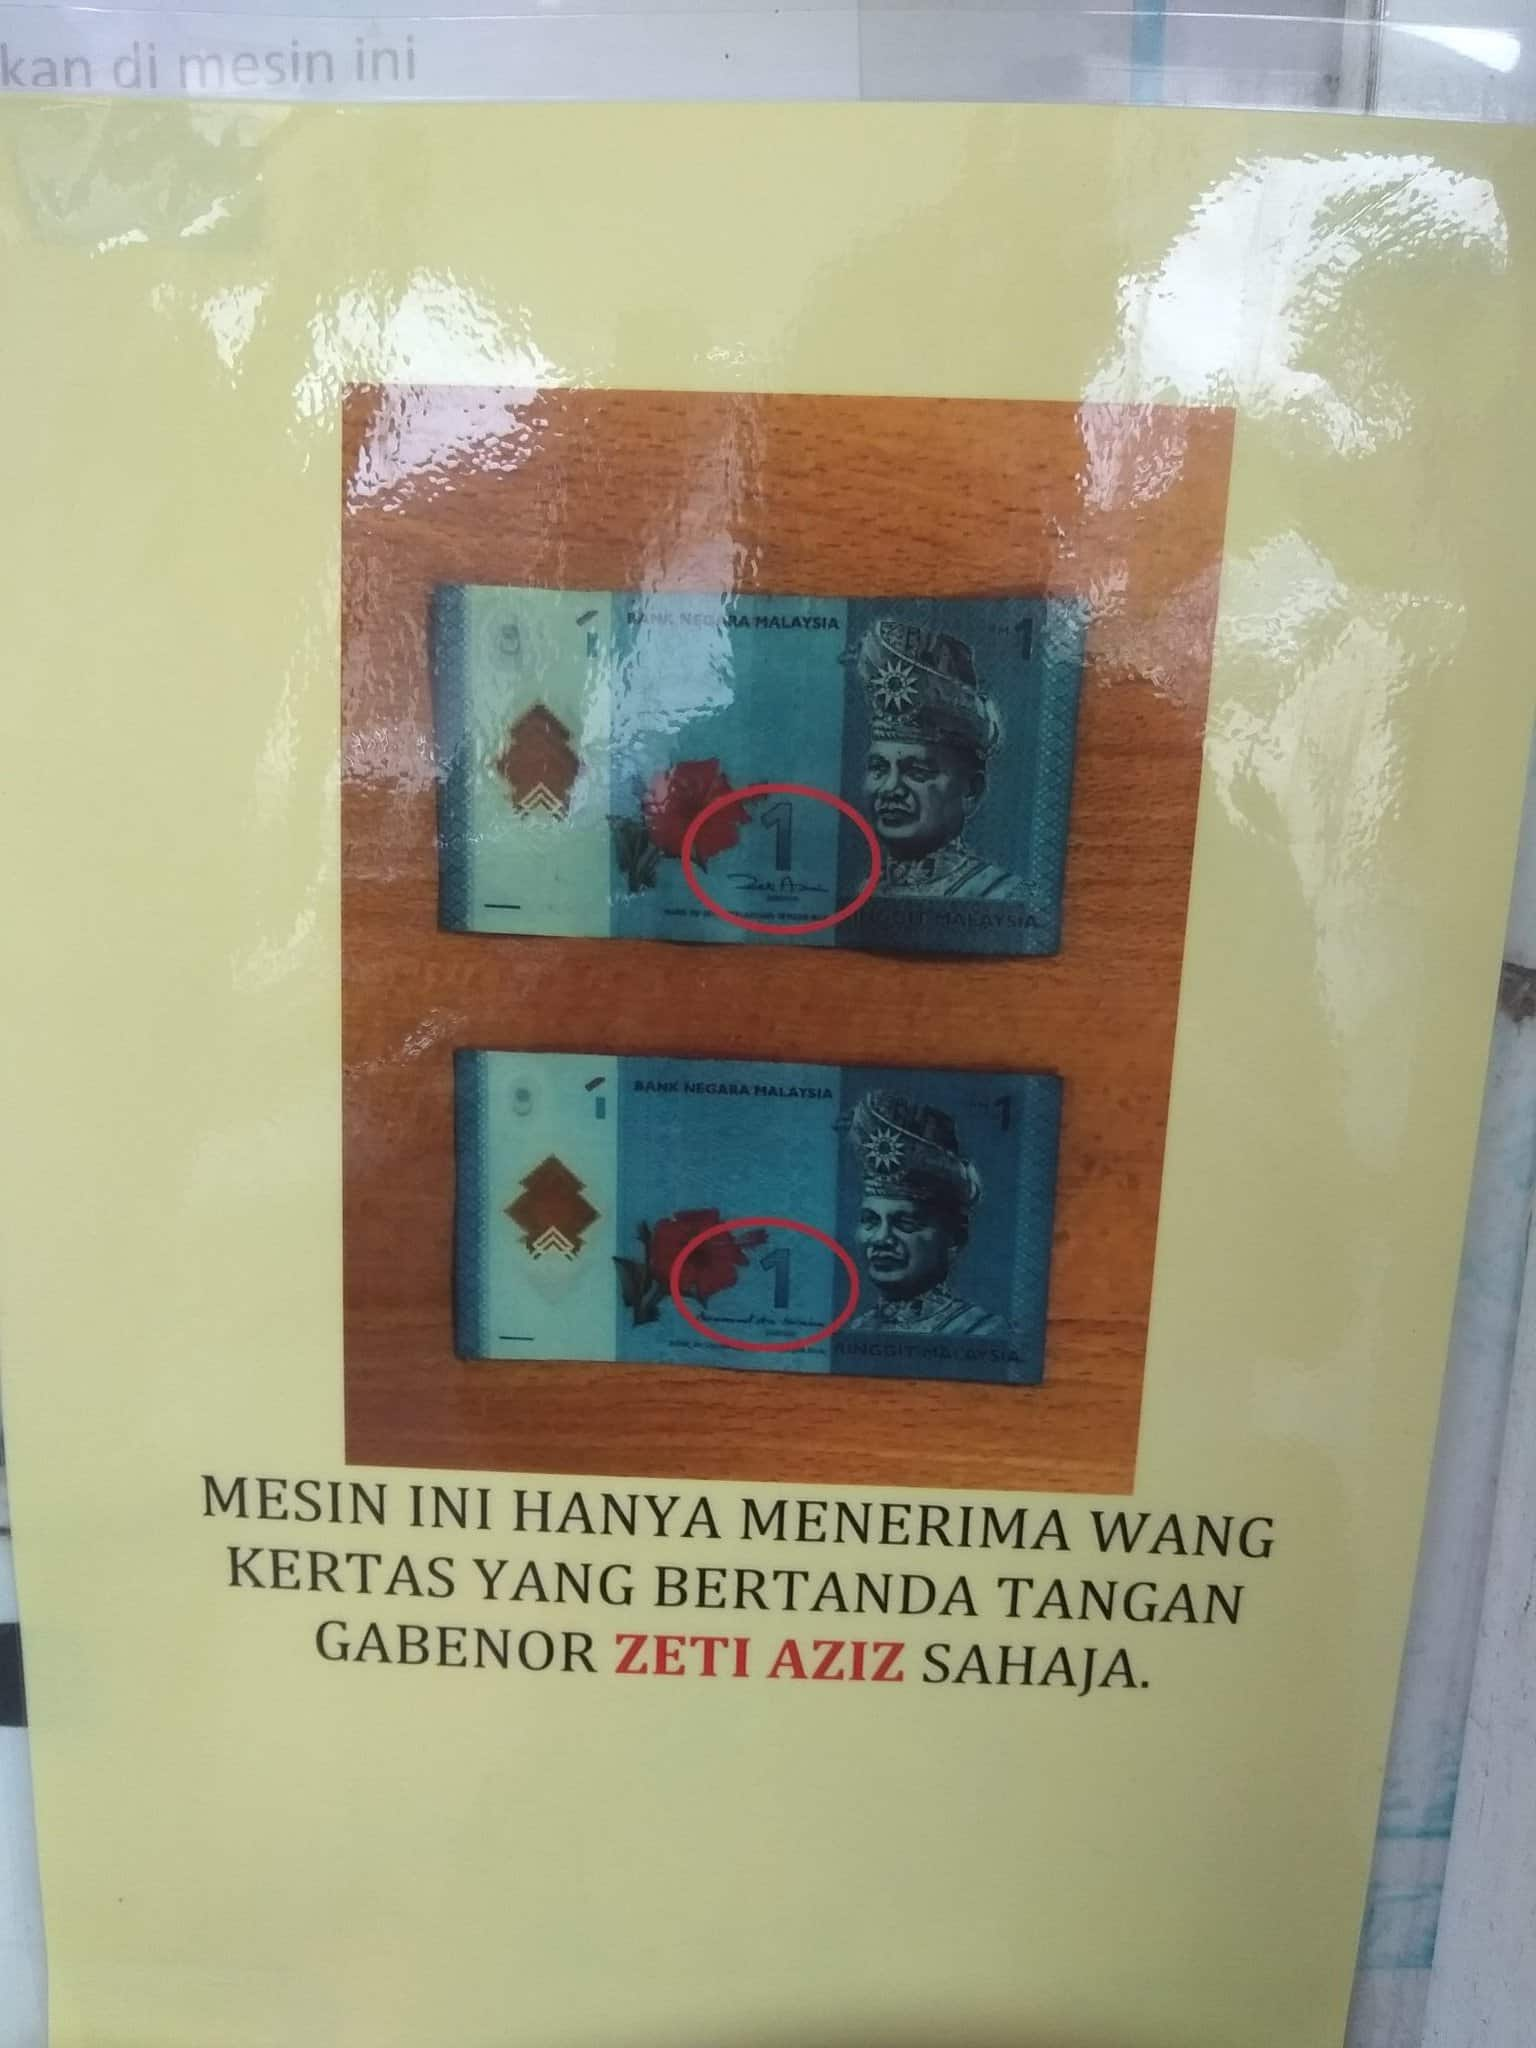 Some machines also got this sign. Img from @Haiqalrosli3 via Twitter.